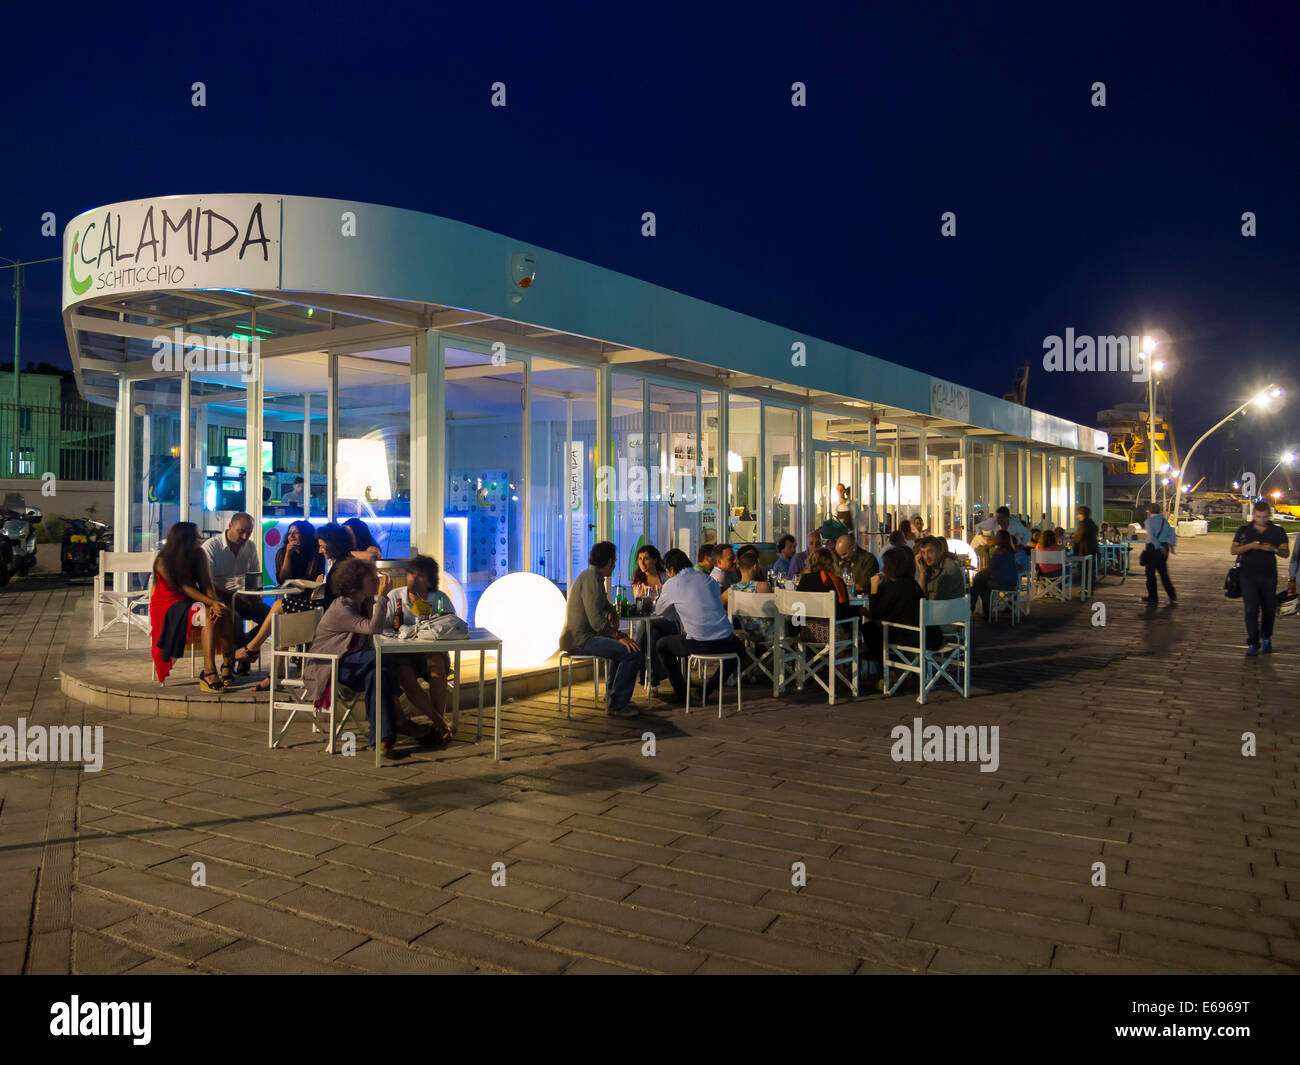 Lounge, bar at the fishing port, Piazza Fonderia, Palermo, Sicily, Italy - Stock Image